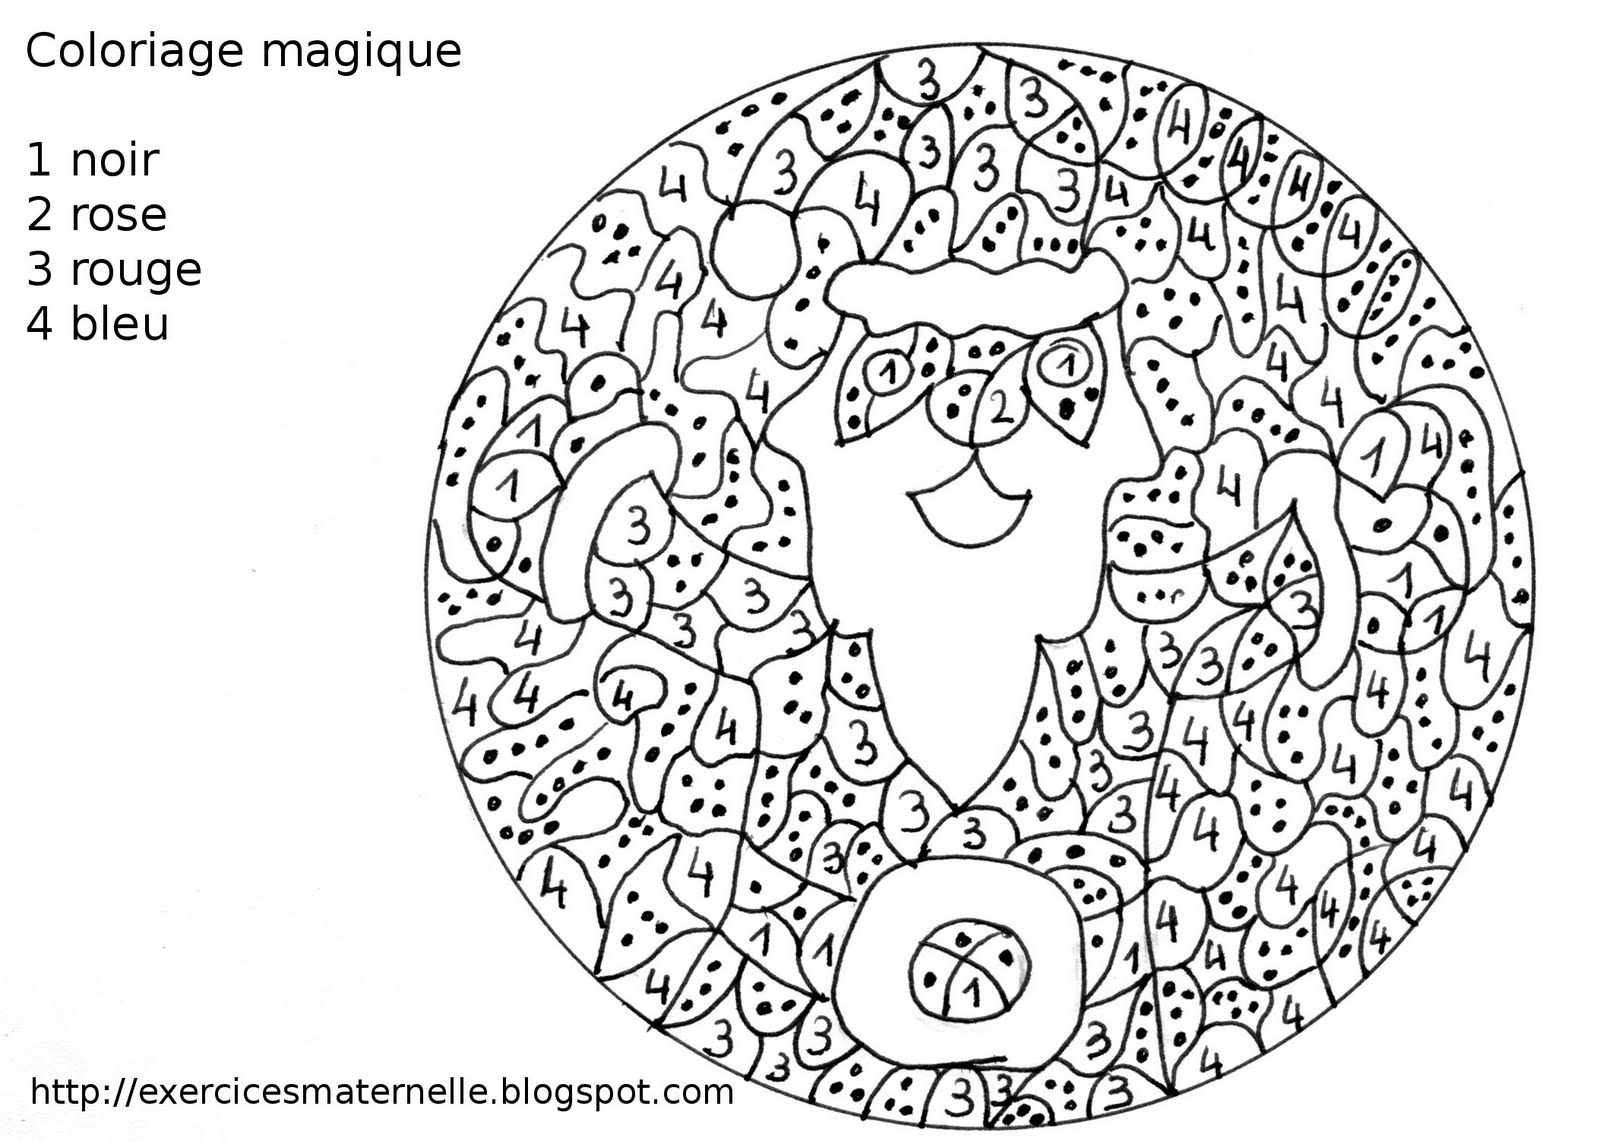 Colouiage magique encore le p¨re No l